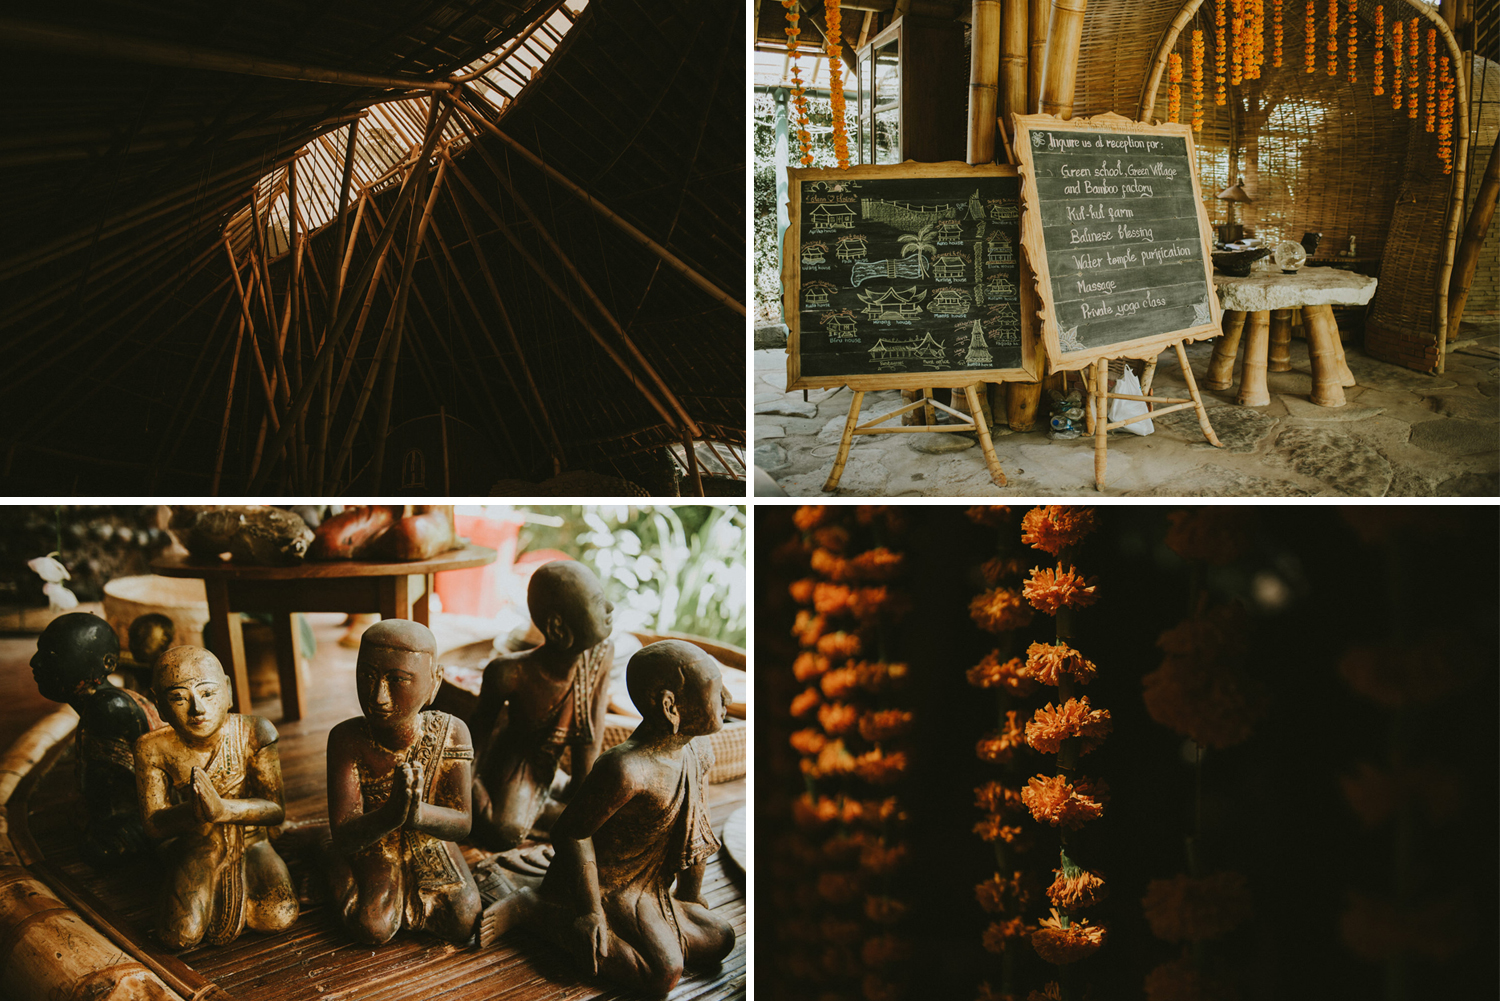 bali-wedding-ubud-wedding-wedding-destination-diktatphotography-kadek-artayasa-elaine-and-glenn-014